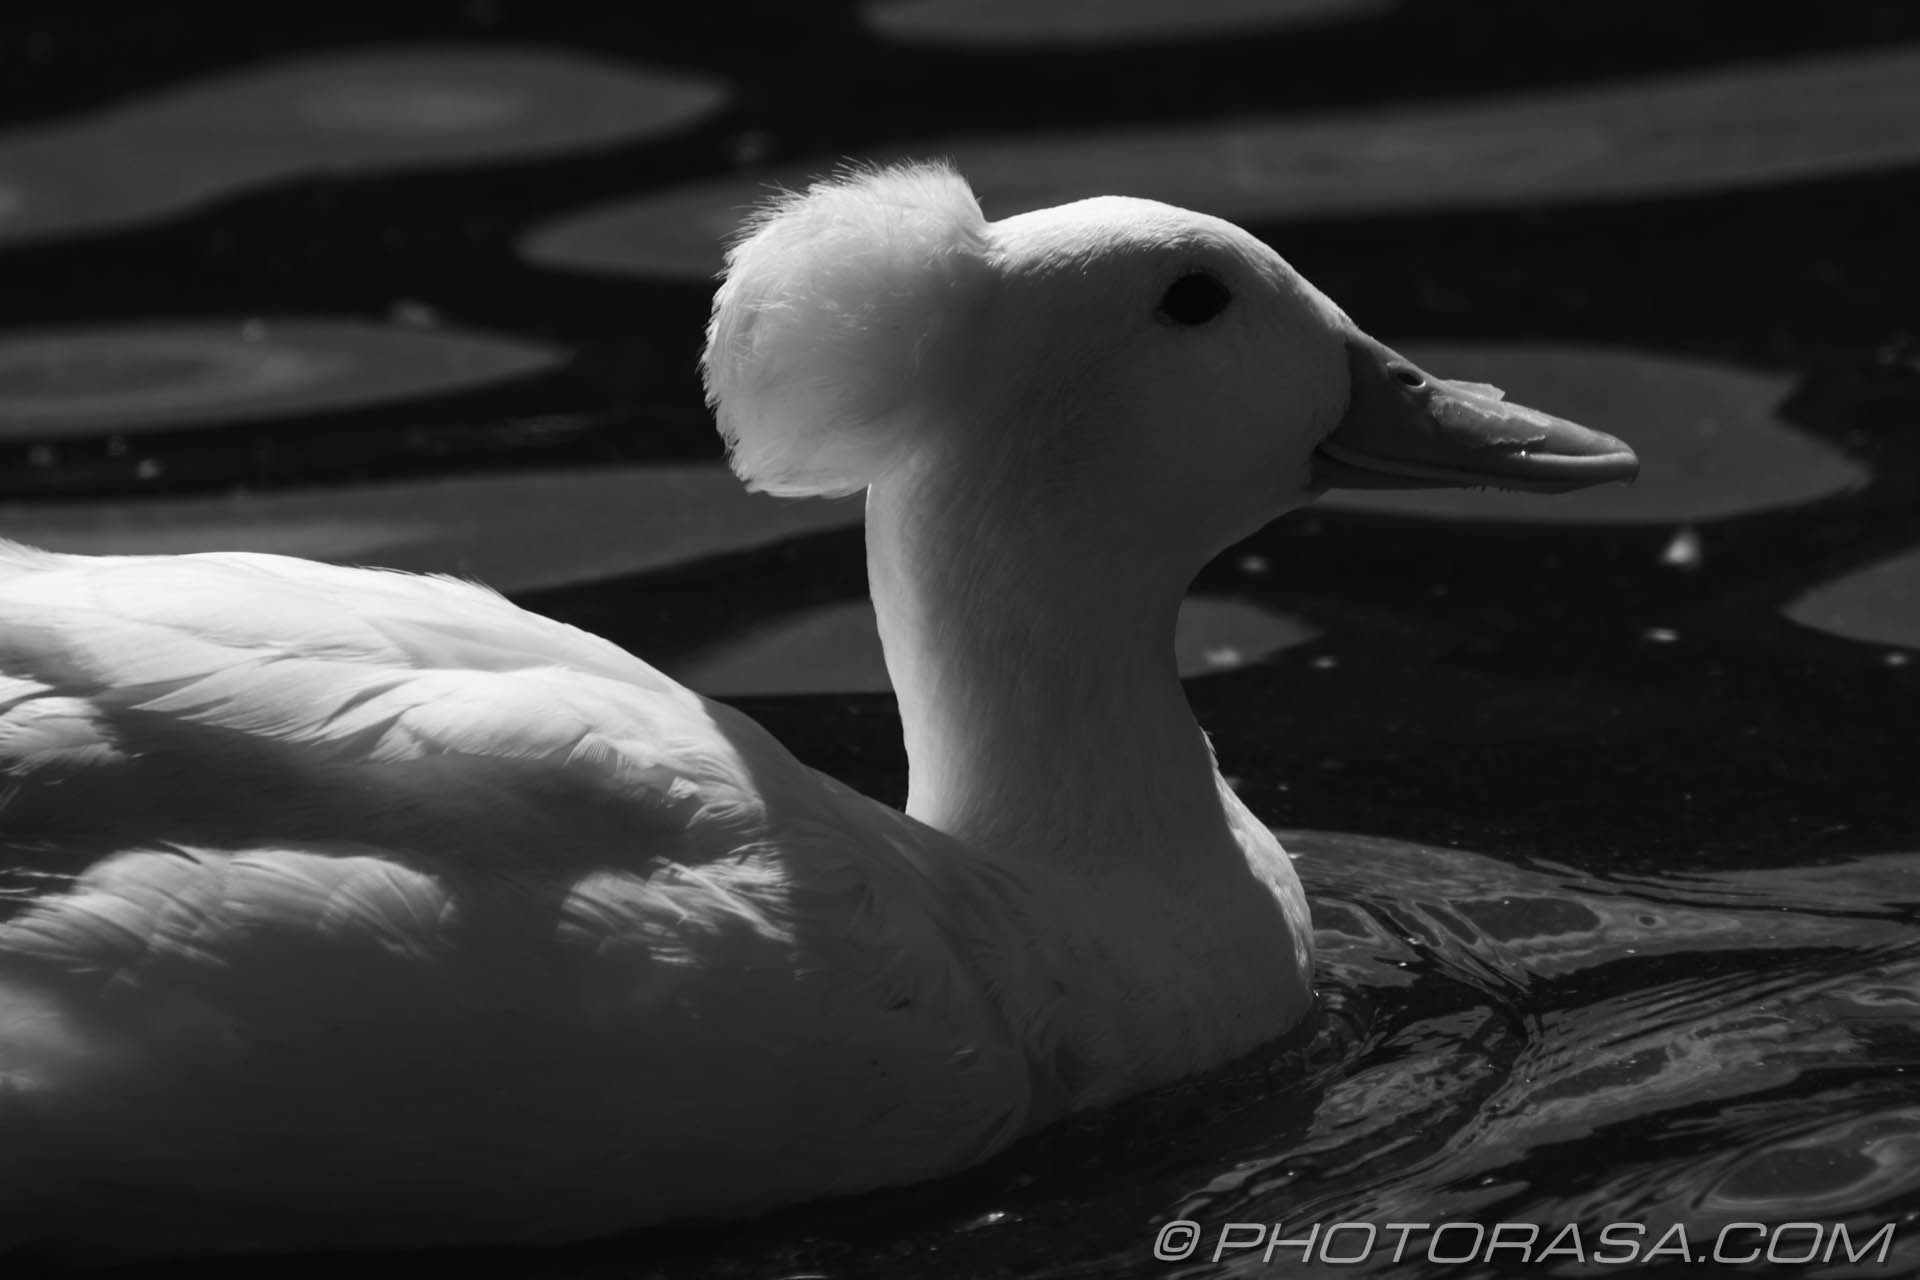 http://photorasa.com/birds-greenworld/white-crested-duck-swimming-in-black-and-white/